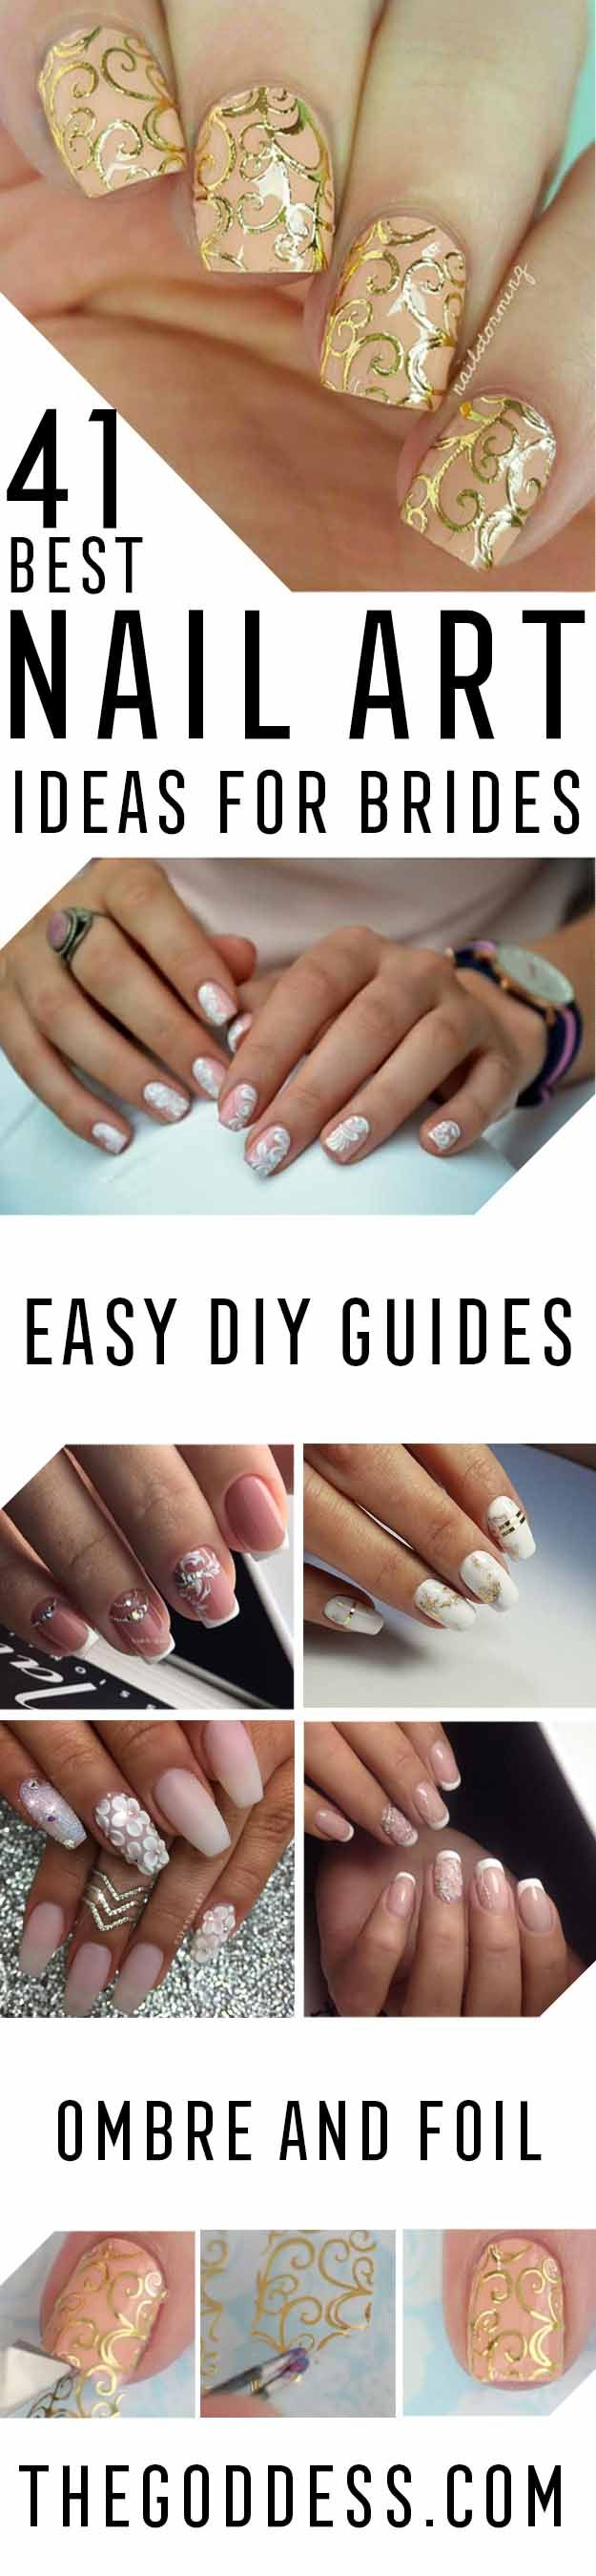 Best Nail Art Ideas for Brides - Simpe, Cute, DIY NailArt Tutorials That Are Step By Step For Brides.  Everything From The Wedding Manicure To French Tips To Simple Sparkle and Bling For The Ring Finger.  These Are Super Fun And Super Easy Bridal Nails - http://thegoddess.com/nail-art-ideas-for-brides